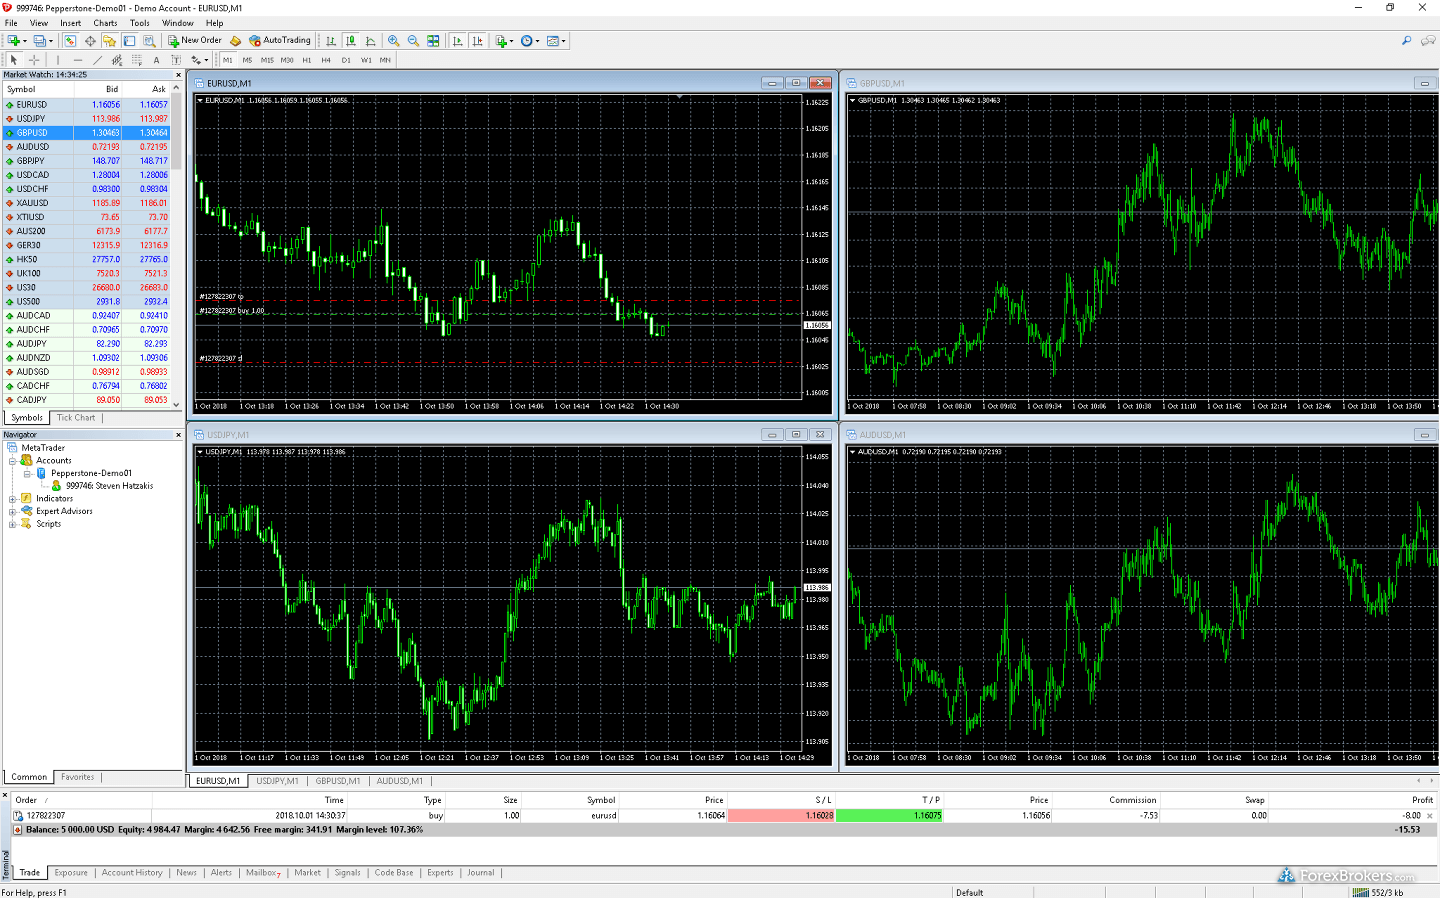 Pepperstone MetaTrader4 desktop